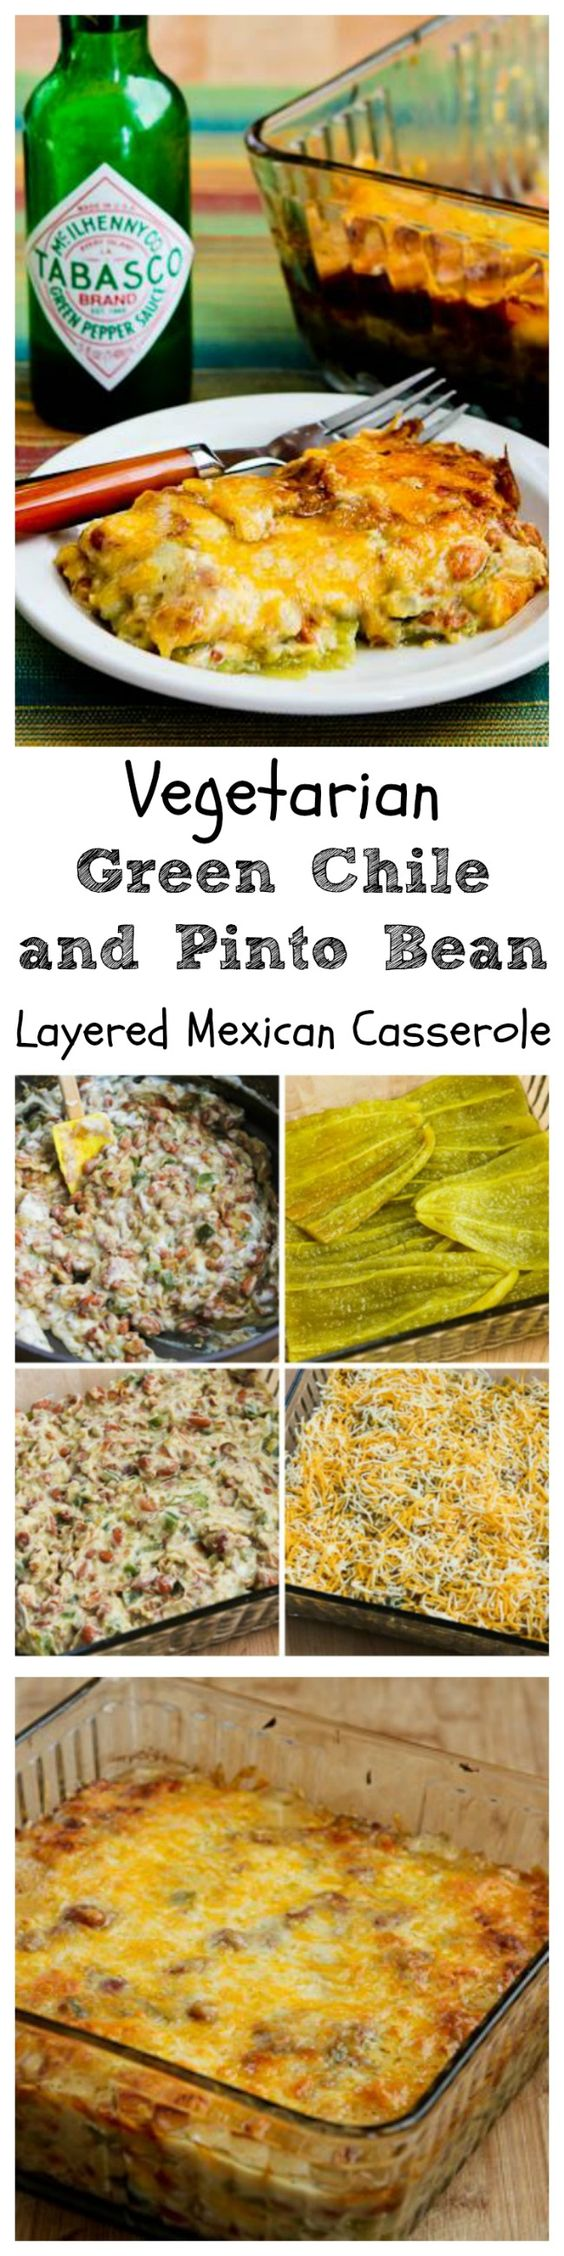 Recipe For Green Chile And Pinto Bean Layered Mexican Casserole Recipe ...